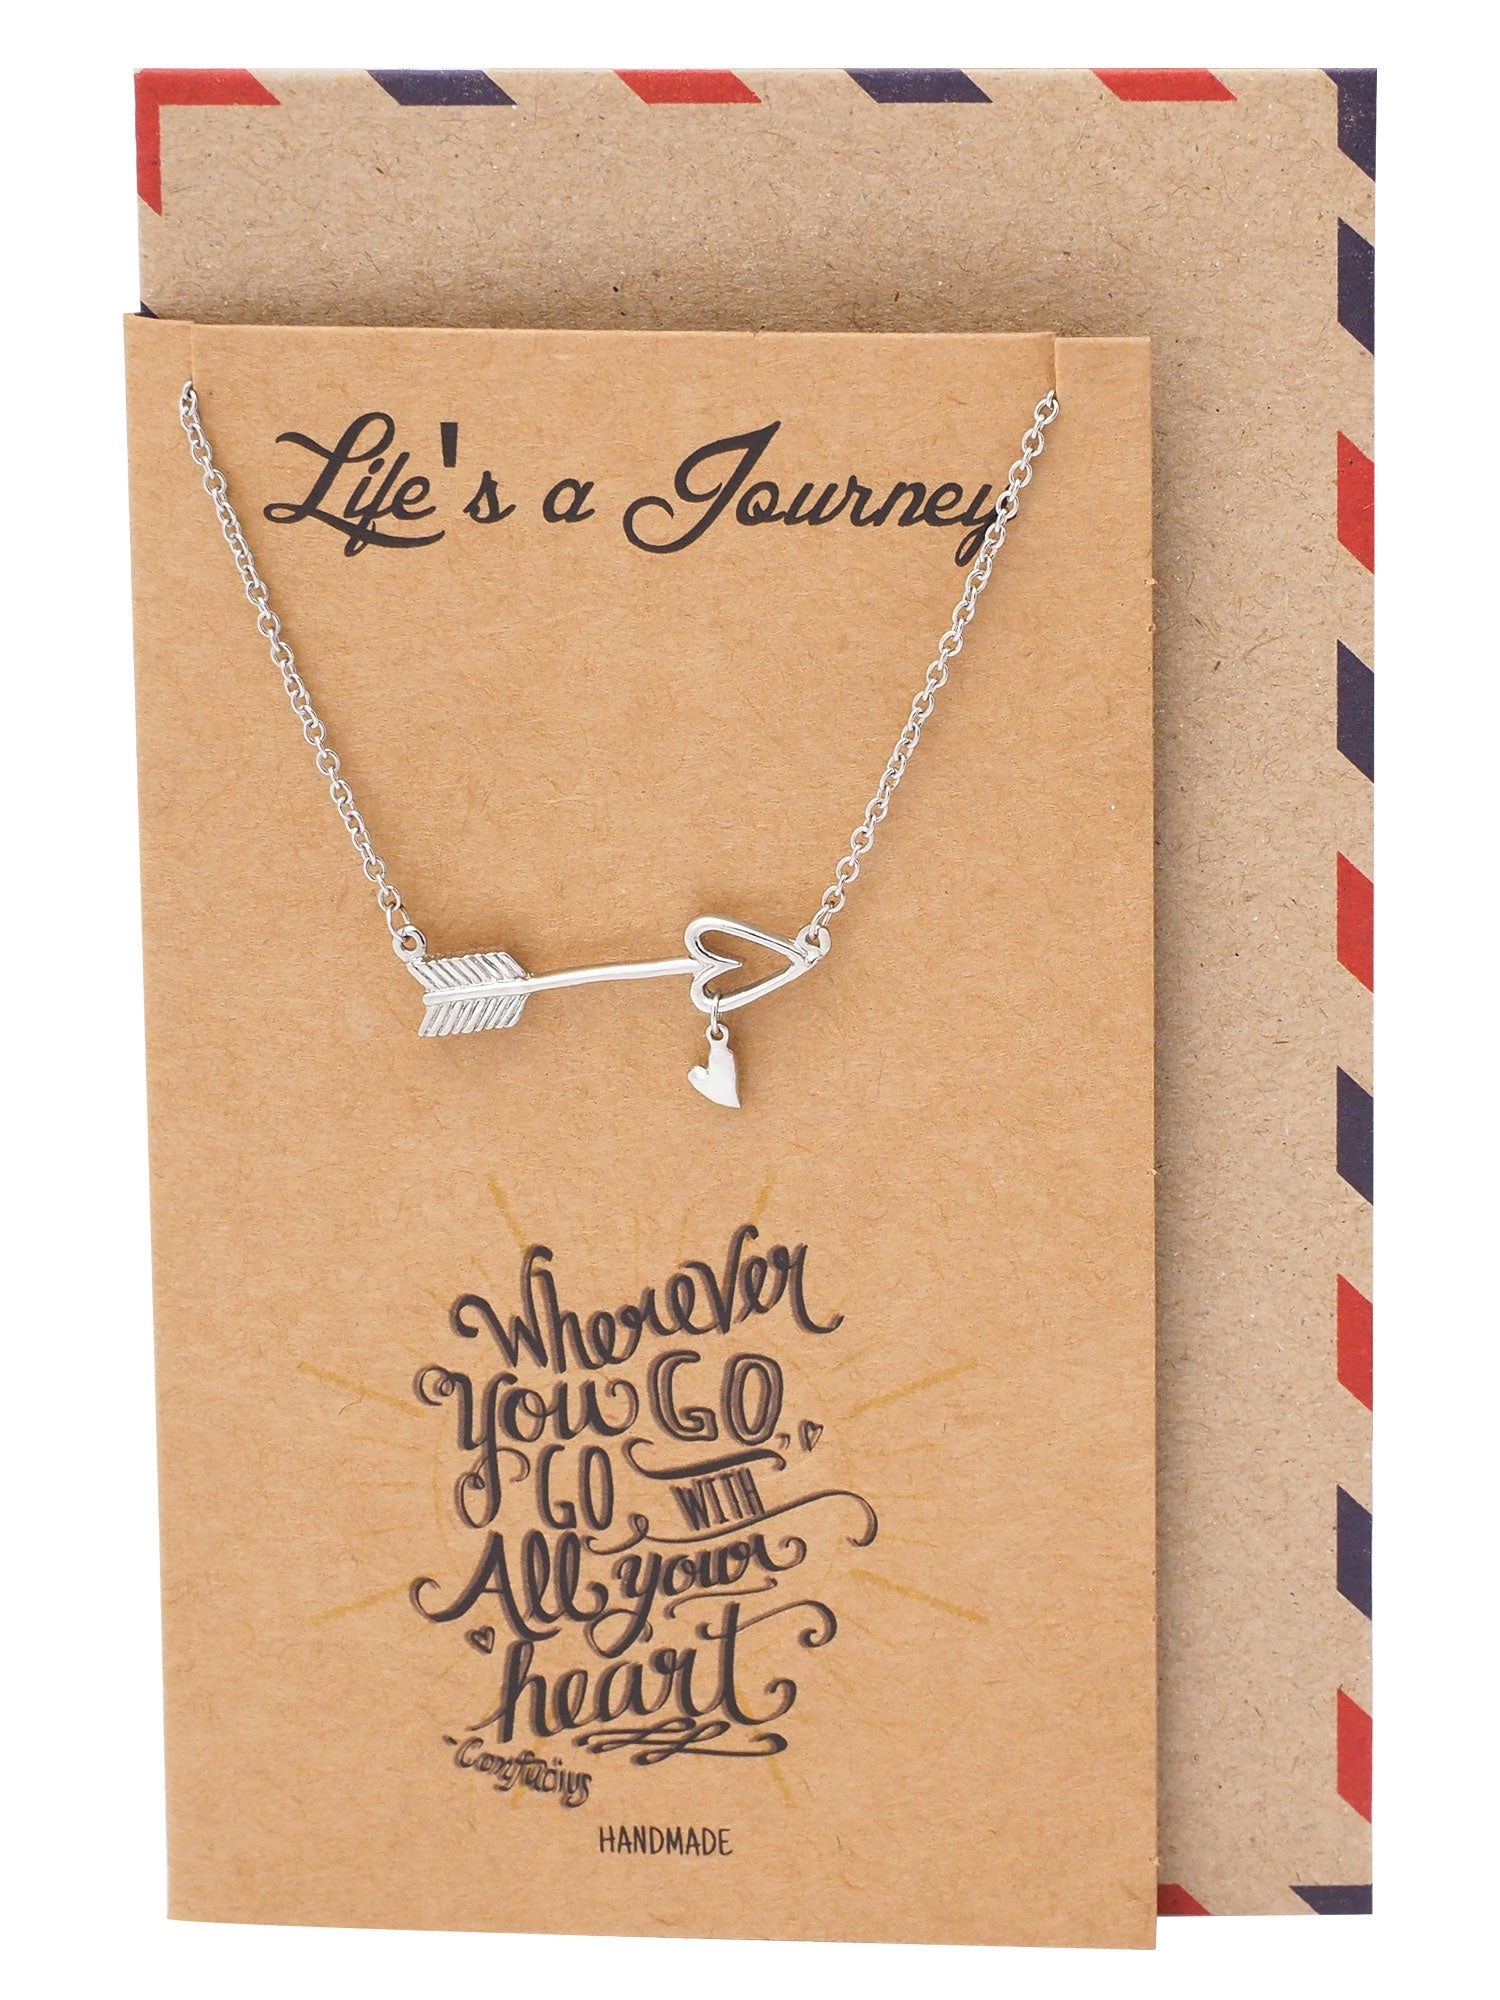 Jody Graduation Gifts Arrow Necklace Inspirational Jewelry